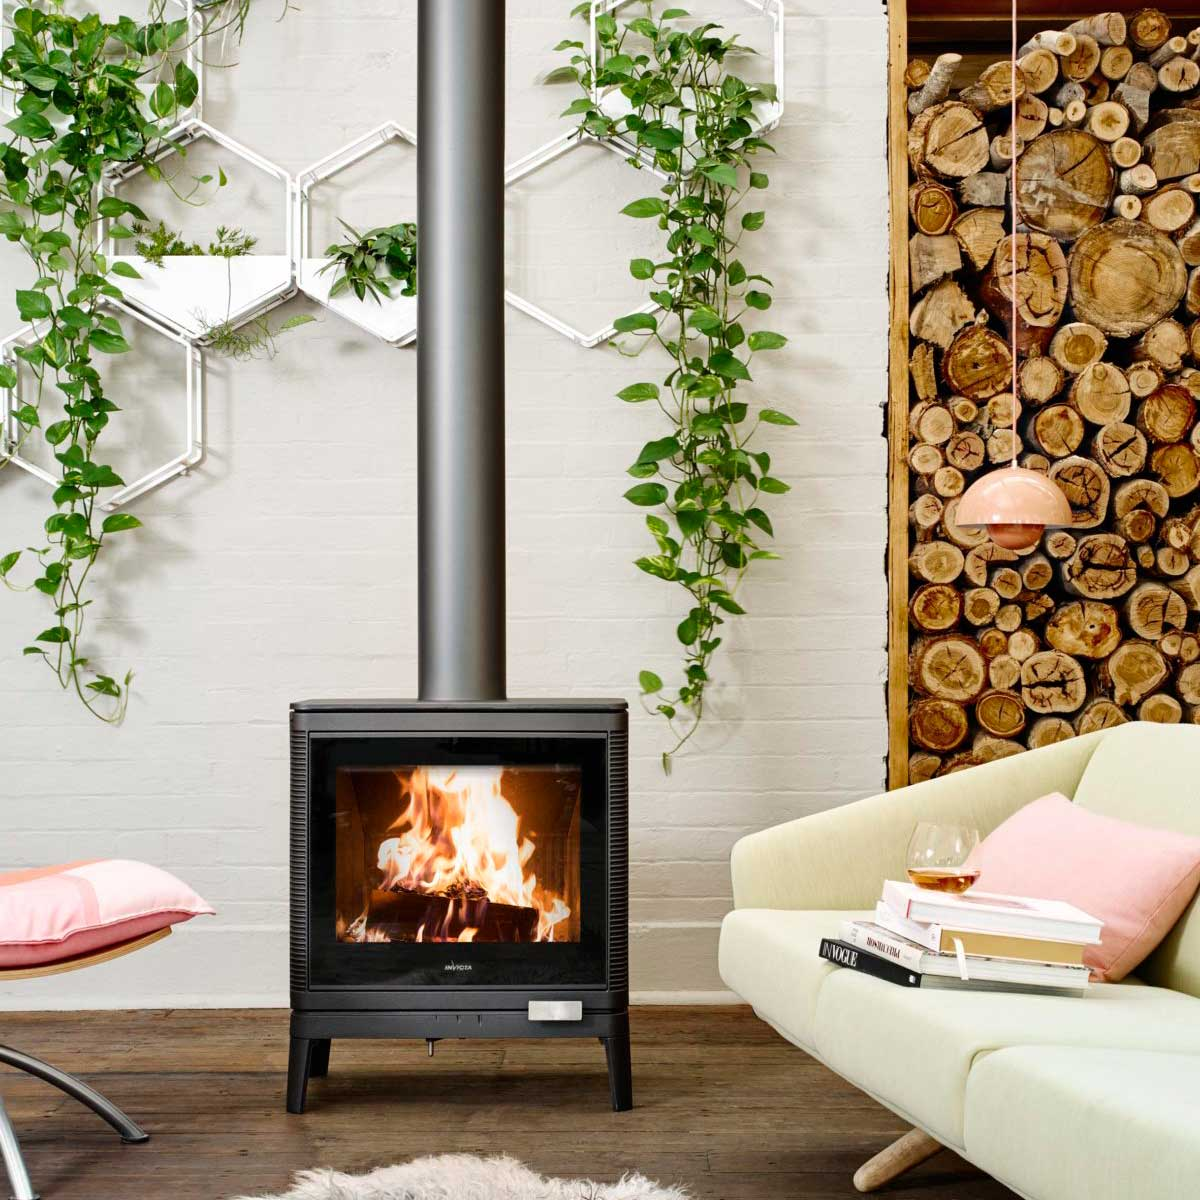 Invicta Kazan wood heater in beautiful interior setting with contemporary white lounge, pink cushions and lush indoor plants